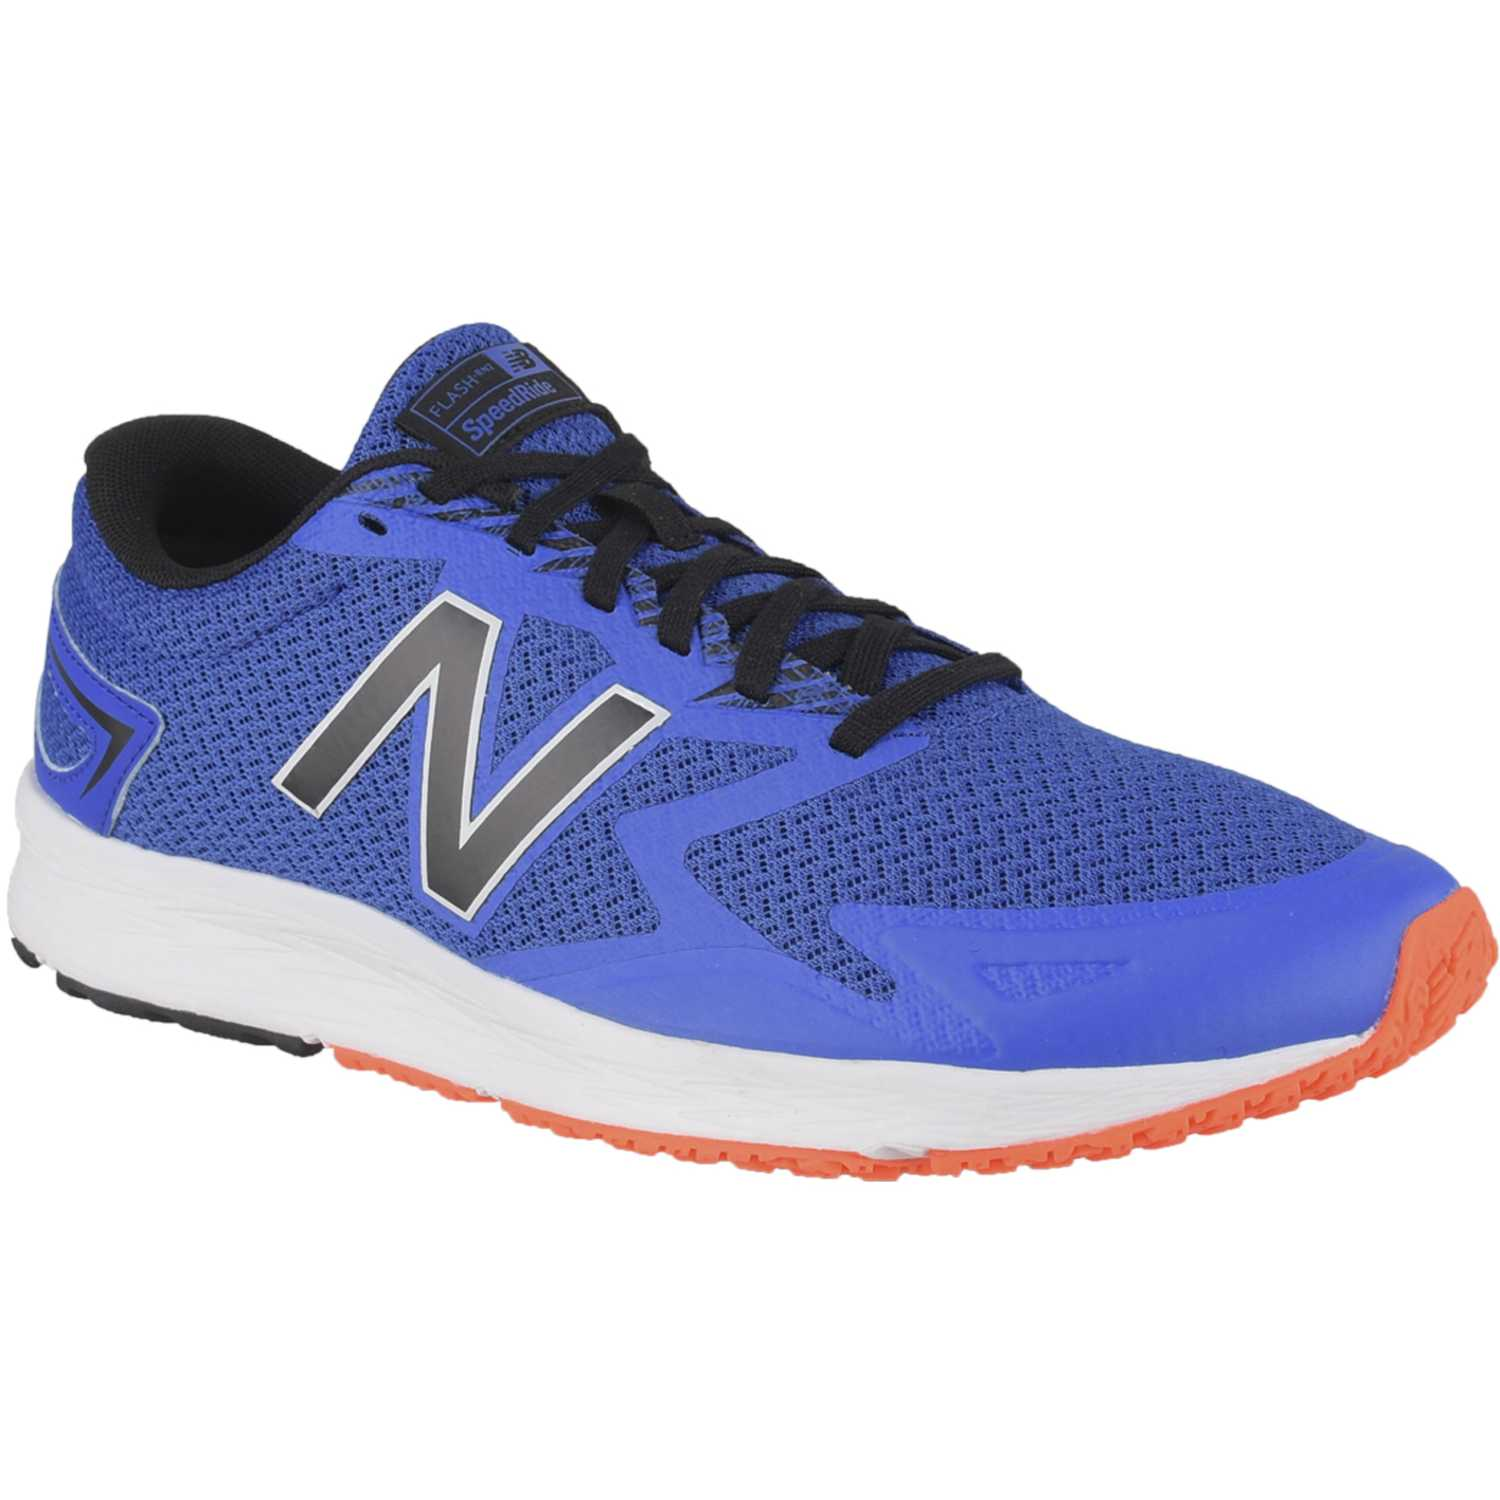 New Balance flash Azulino / negro Running en pista